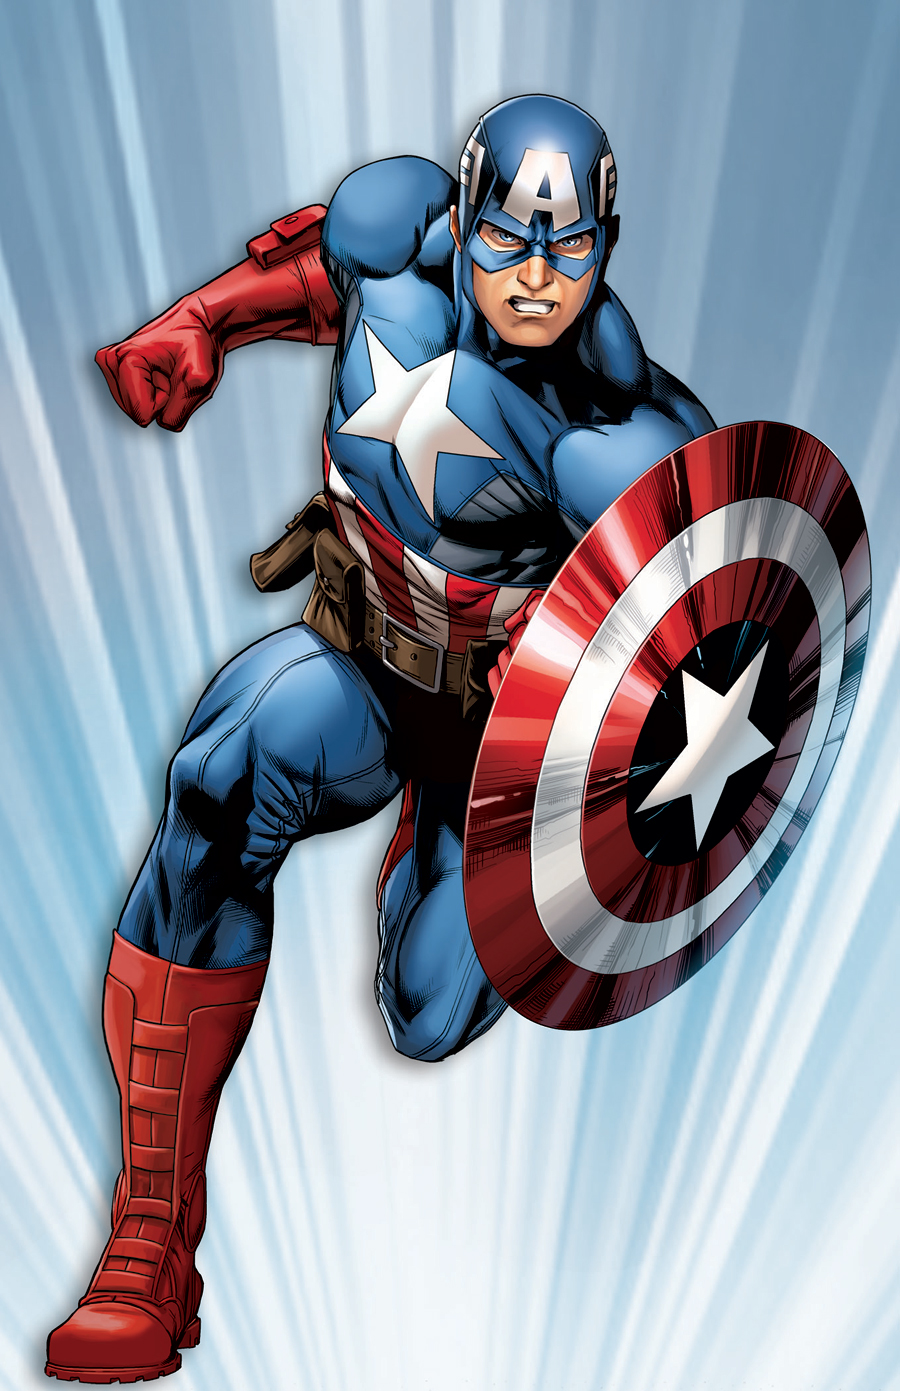 Captain America Super Hero 1662.08 Kb